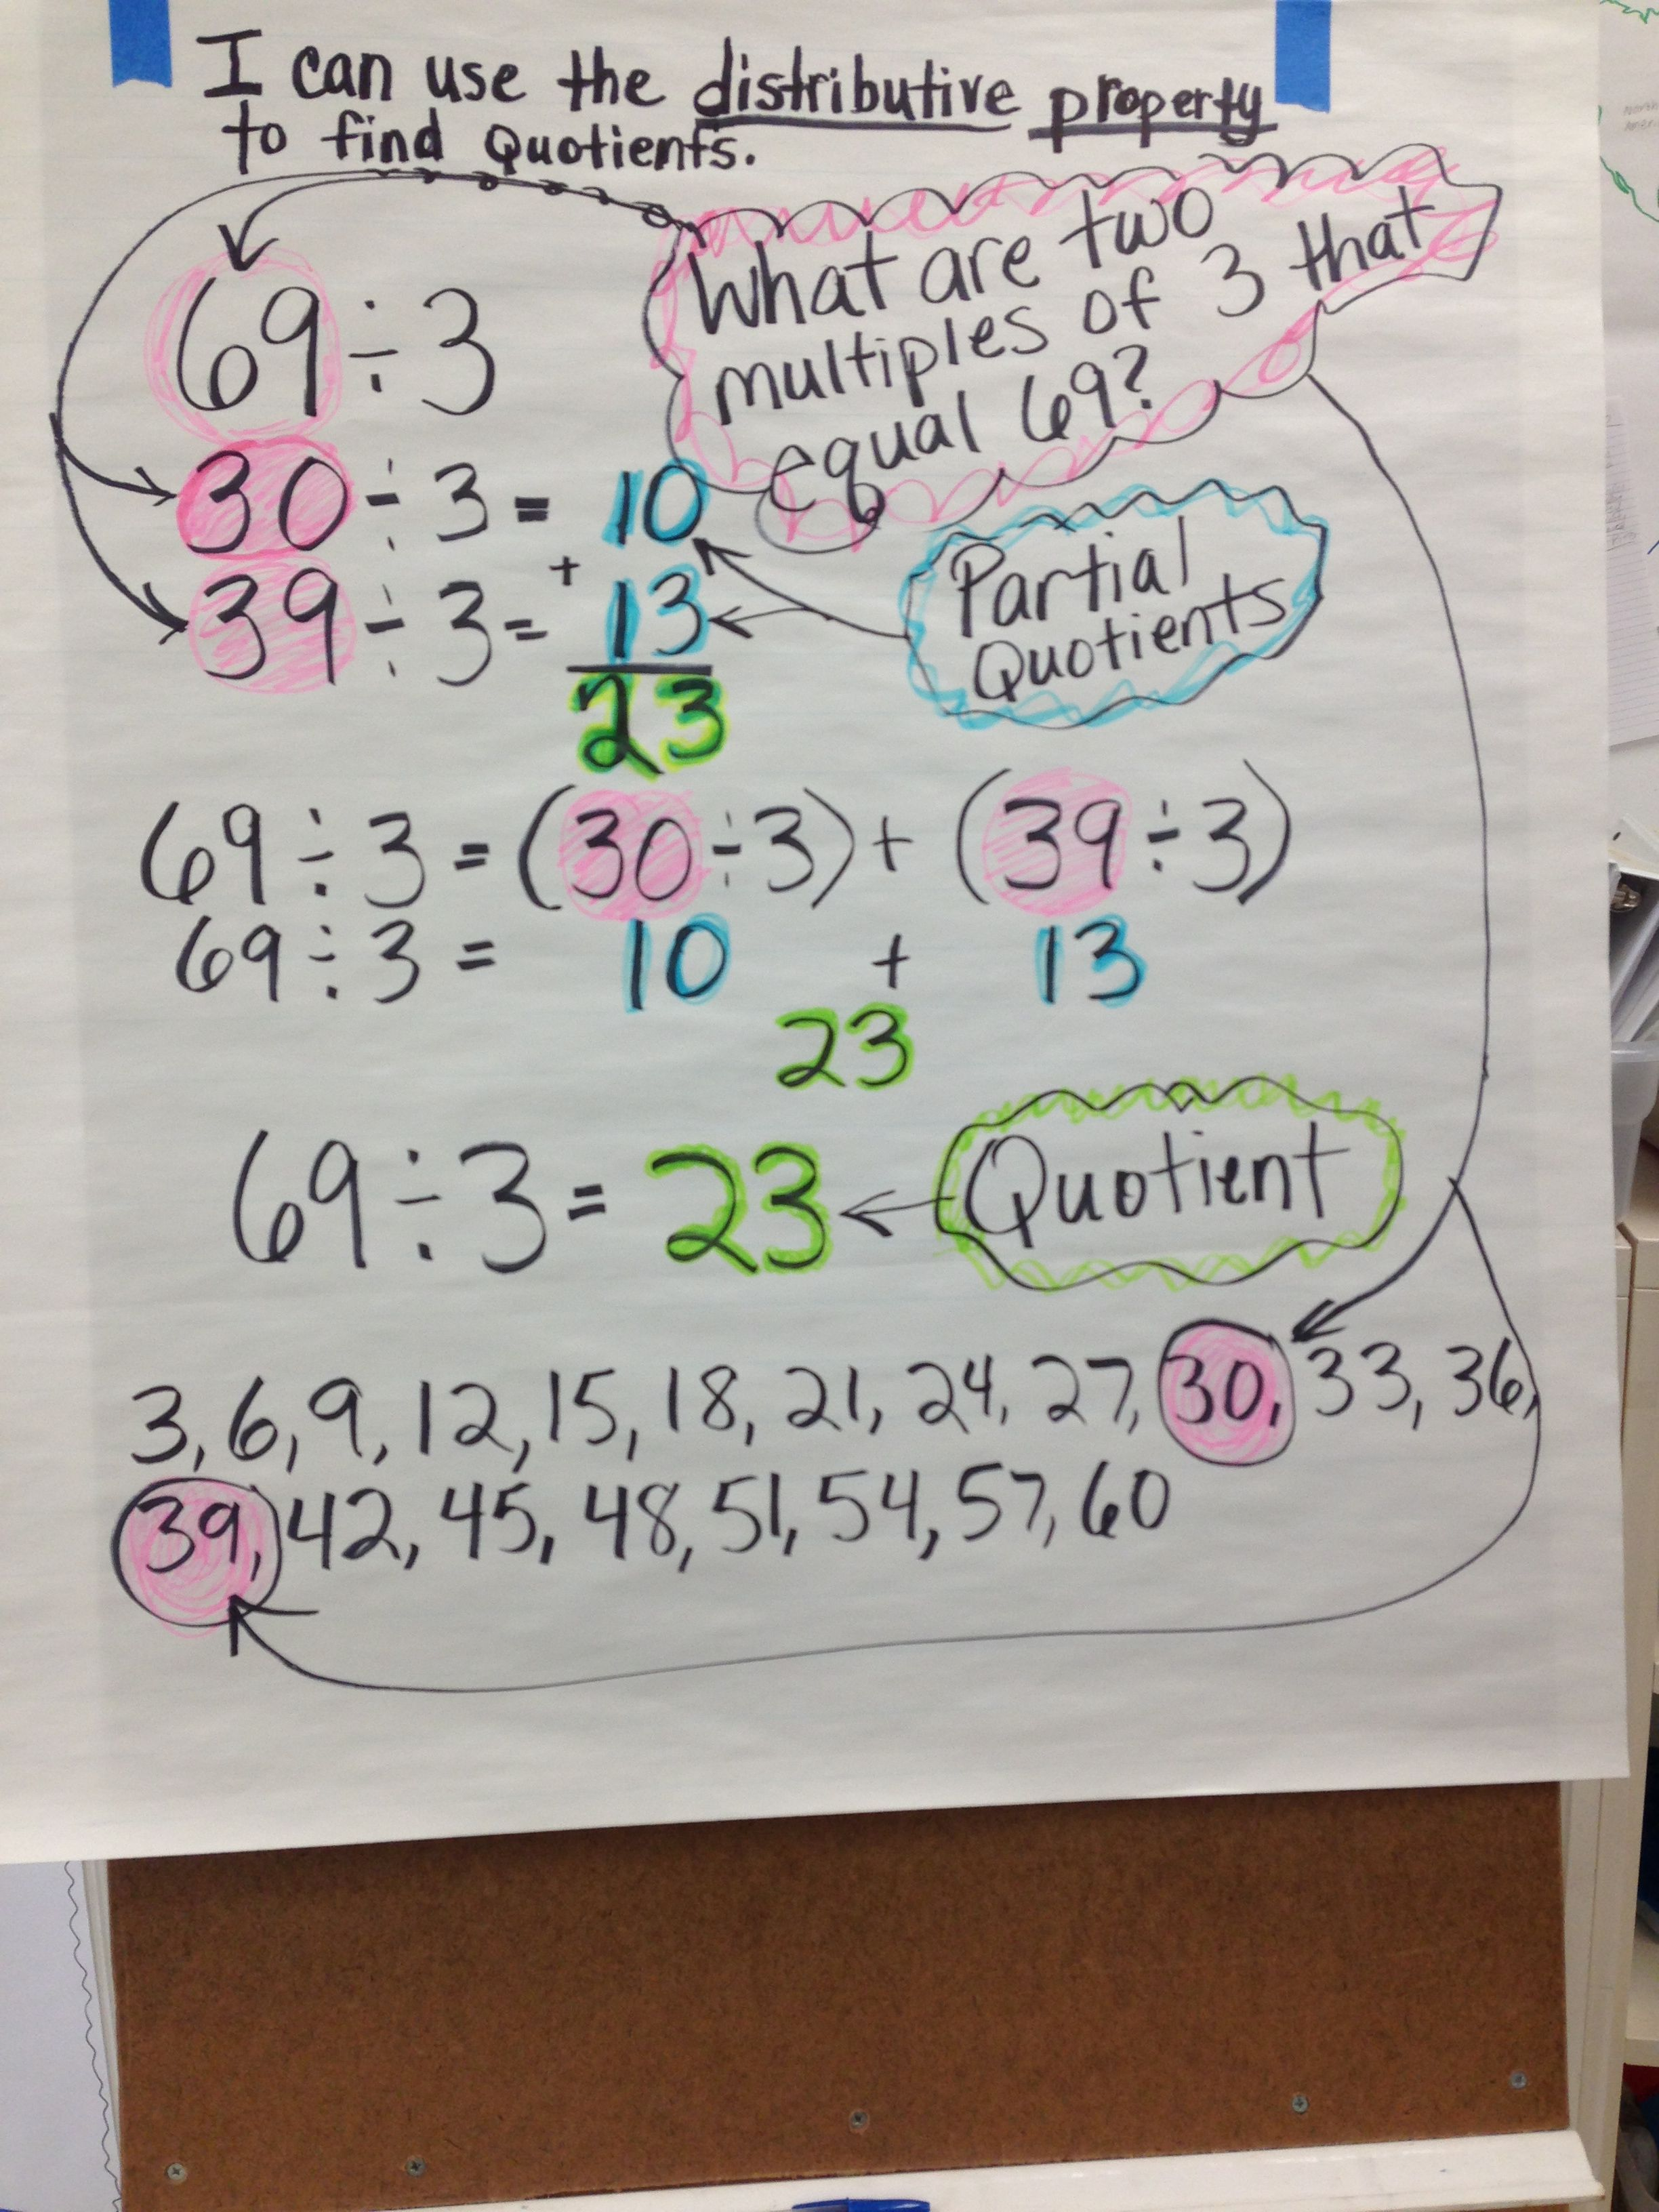 Distributive Property with Fractions